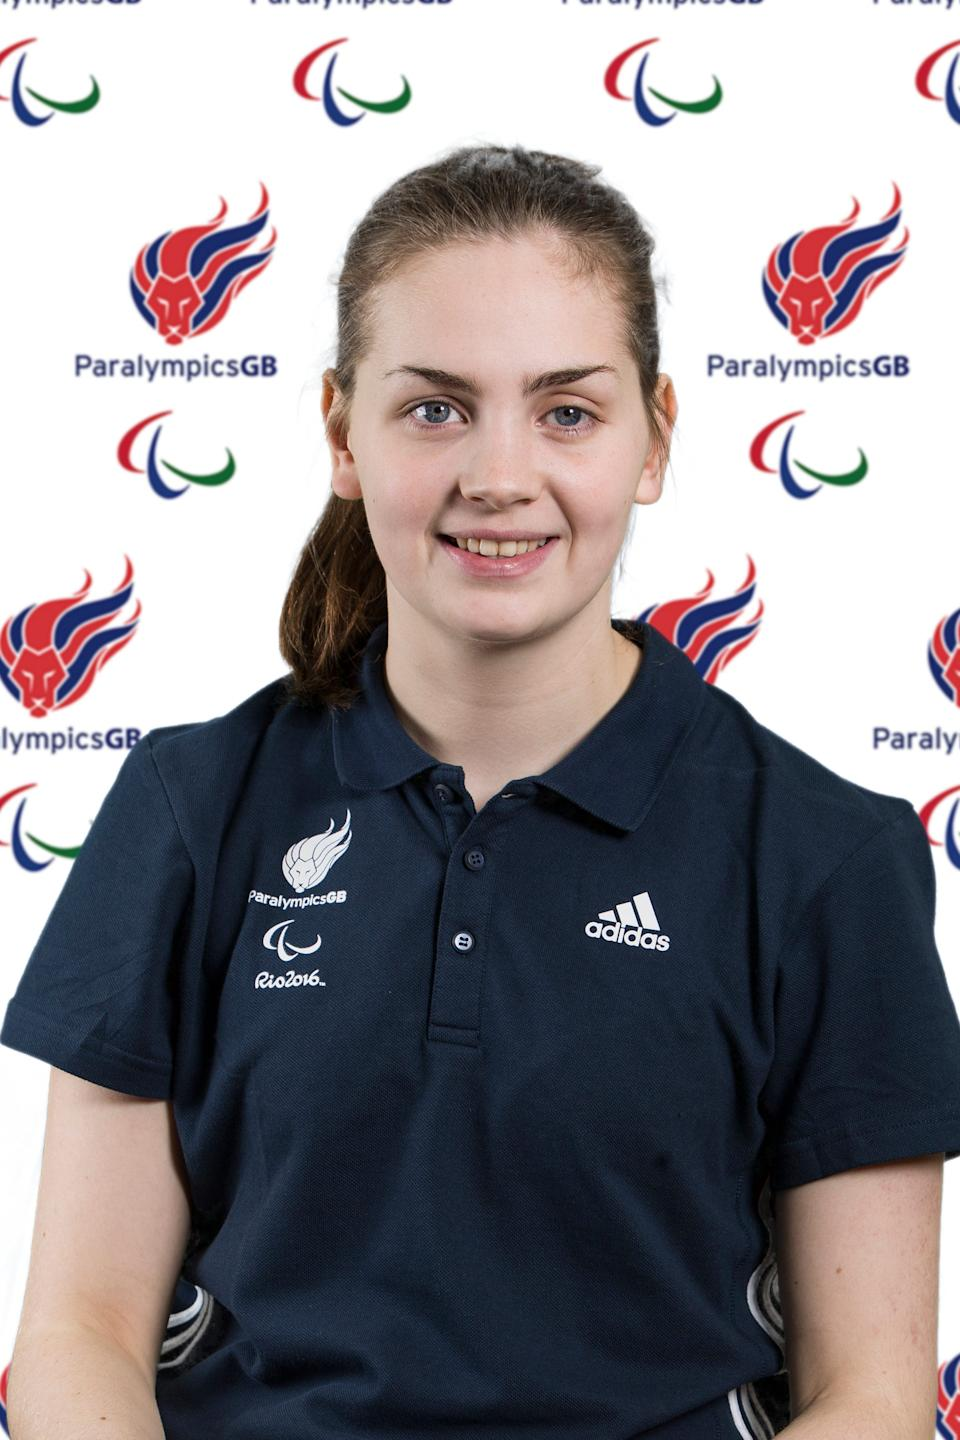 Kearney, 24, is relishing the prospect of finally fulfilling her Paralympic dream in Tokyo